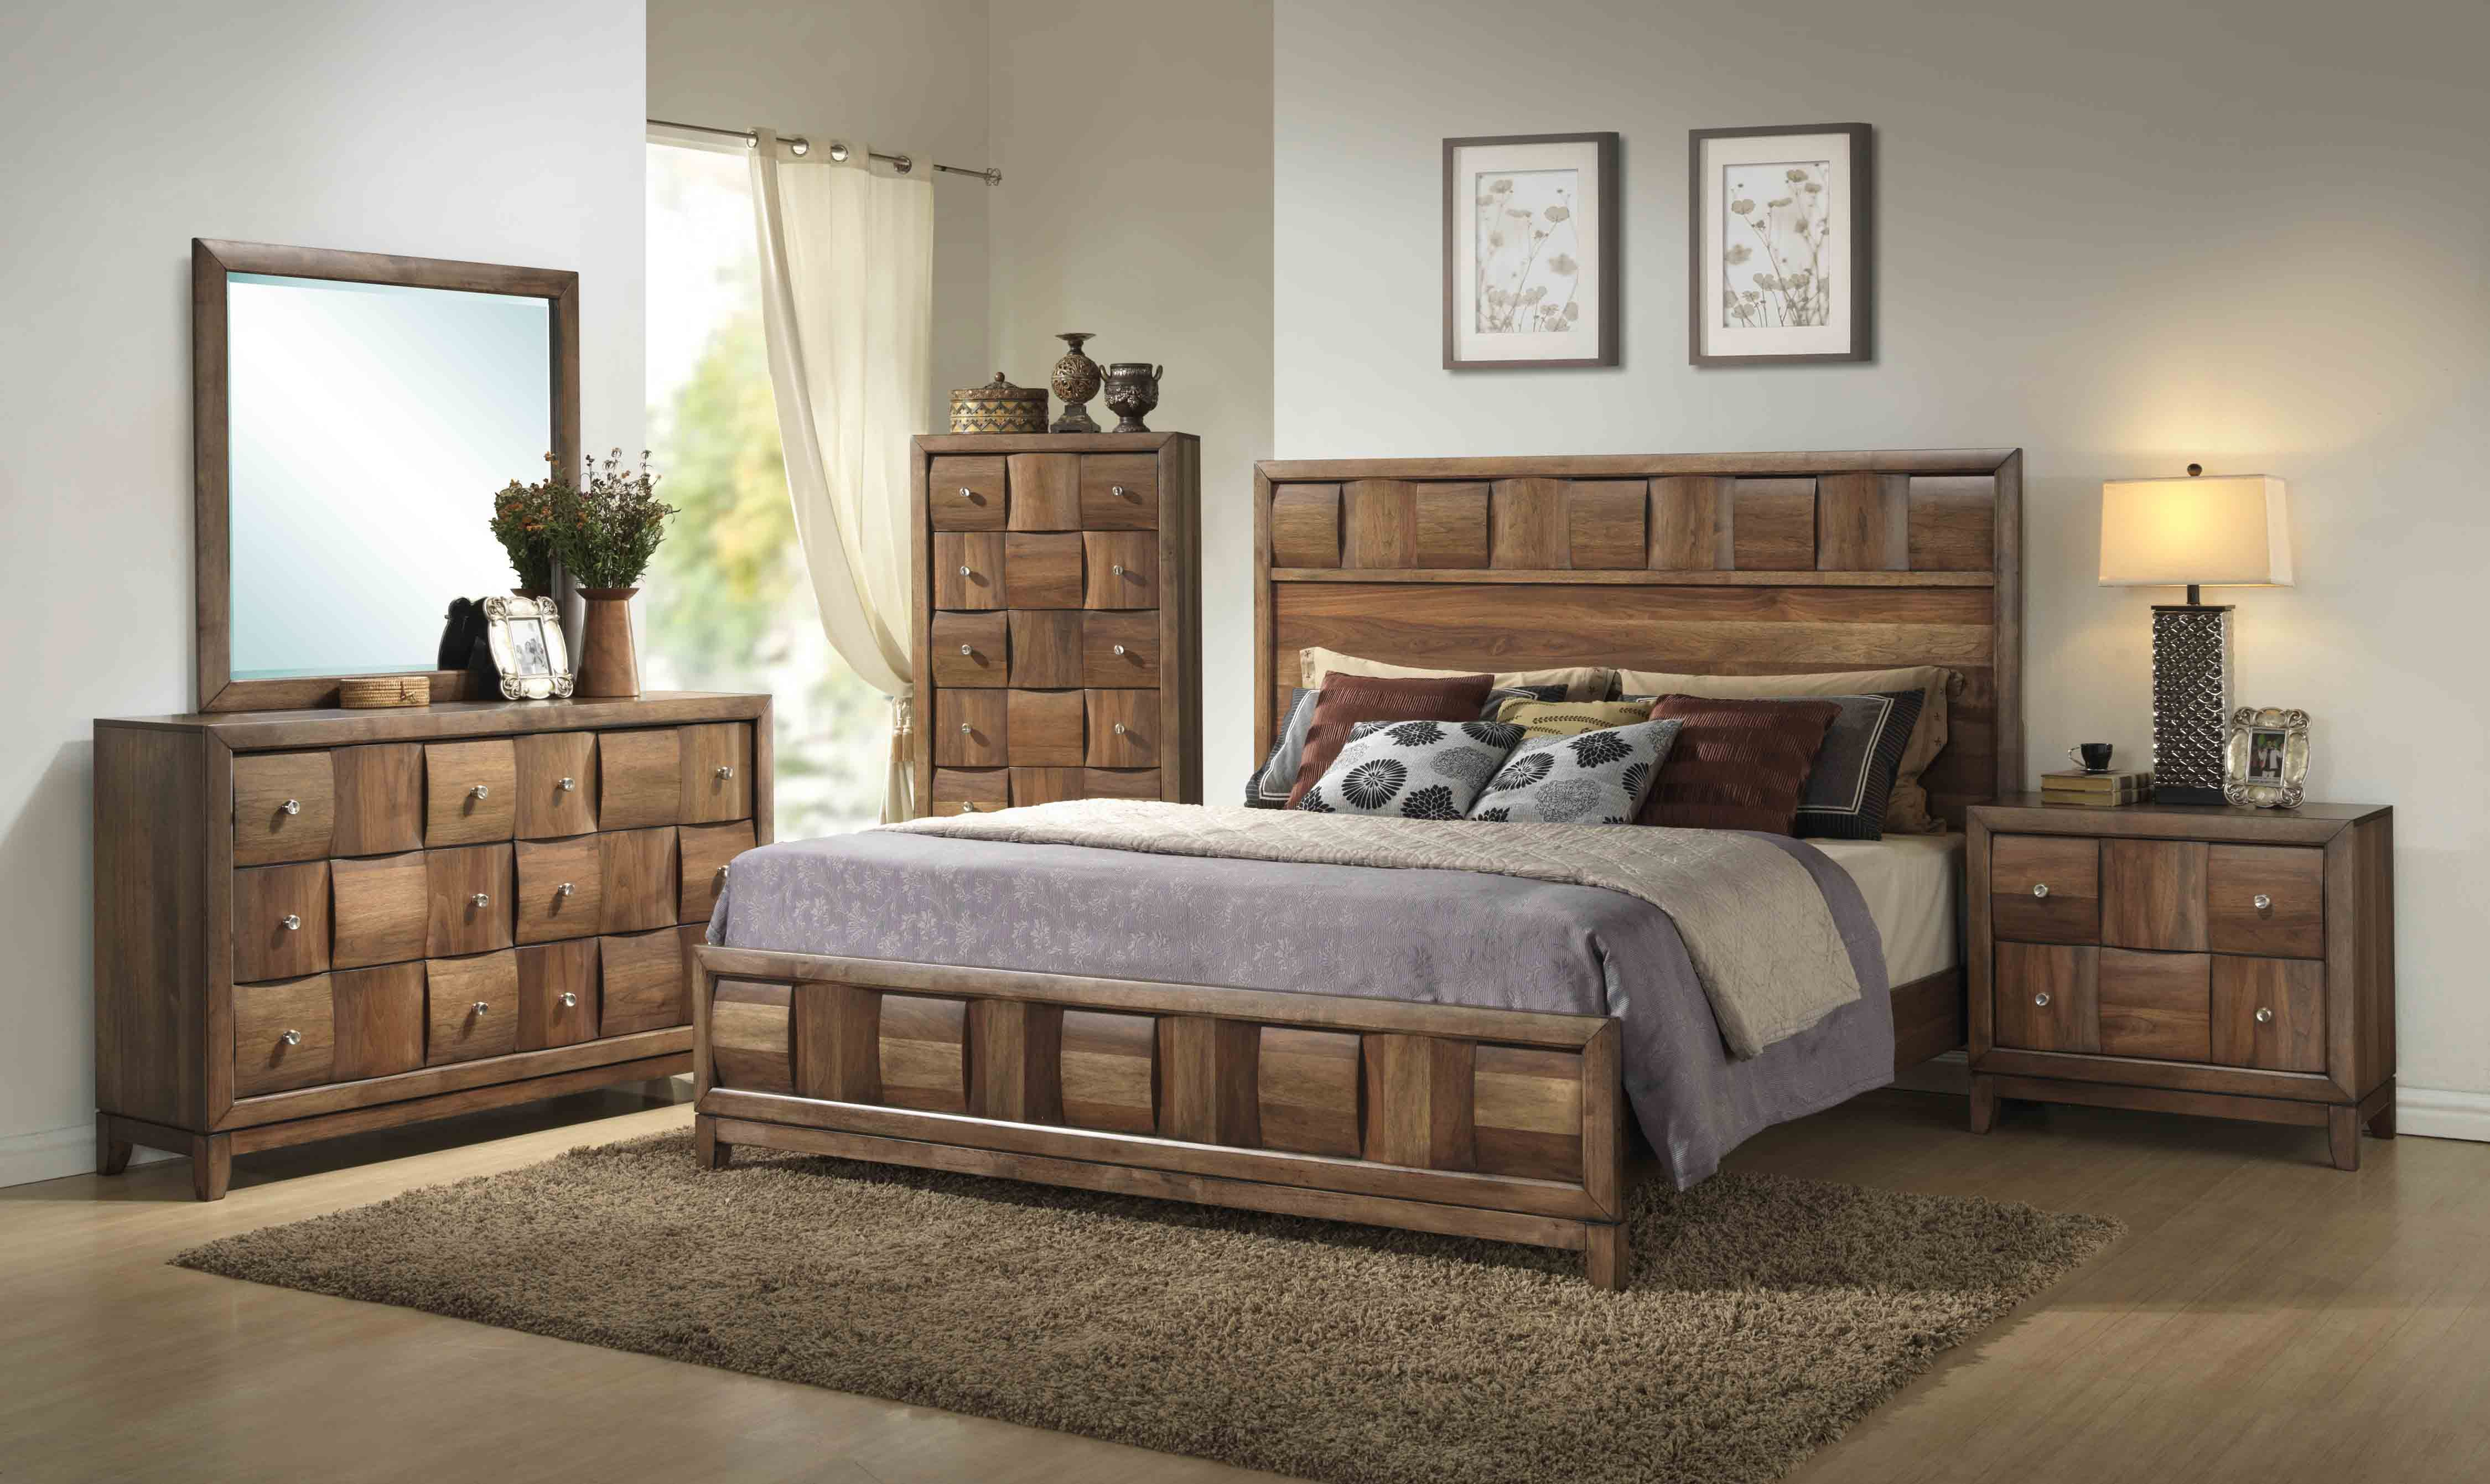 bedroom furniture made of solid wood ensure a healthy room